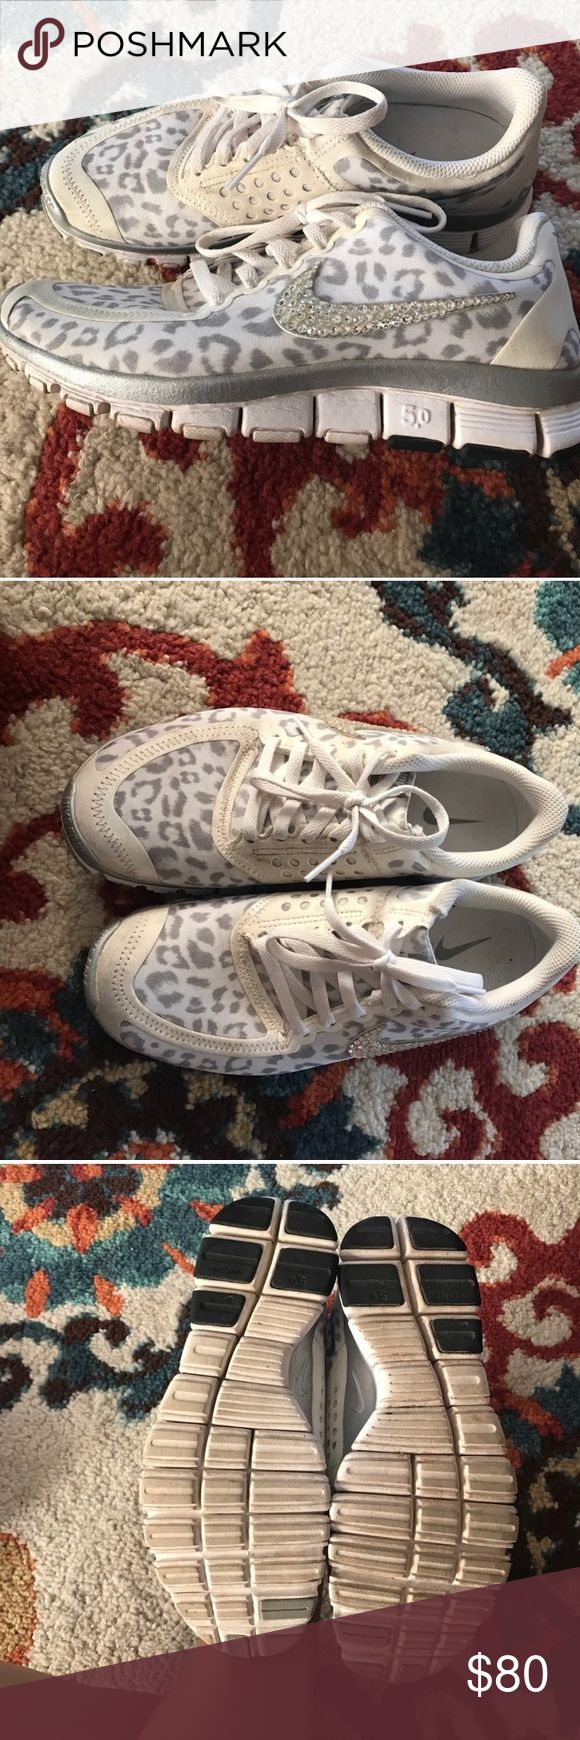 •Nike• Swarovski Crystal Cheetah Shoes Extremely rare!!! These are the most beautiful nikes you'll ever find! Only worn a handful of times. Few spots as shown. Nike Shoes